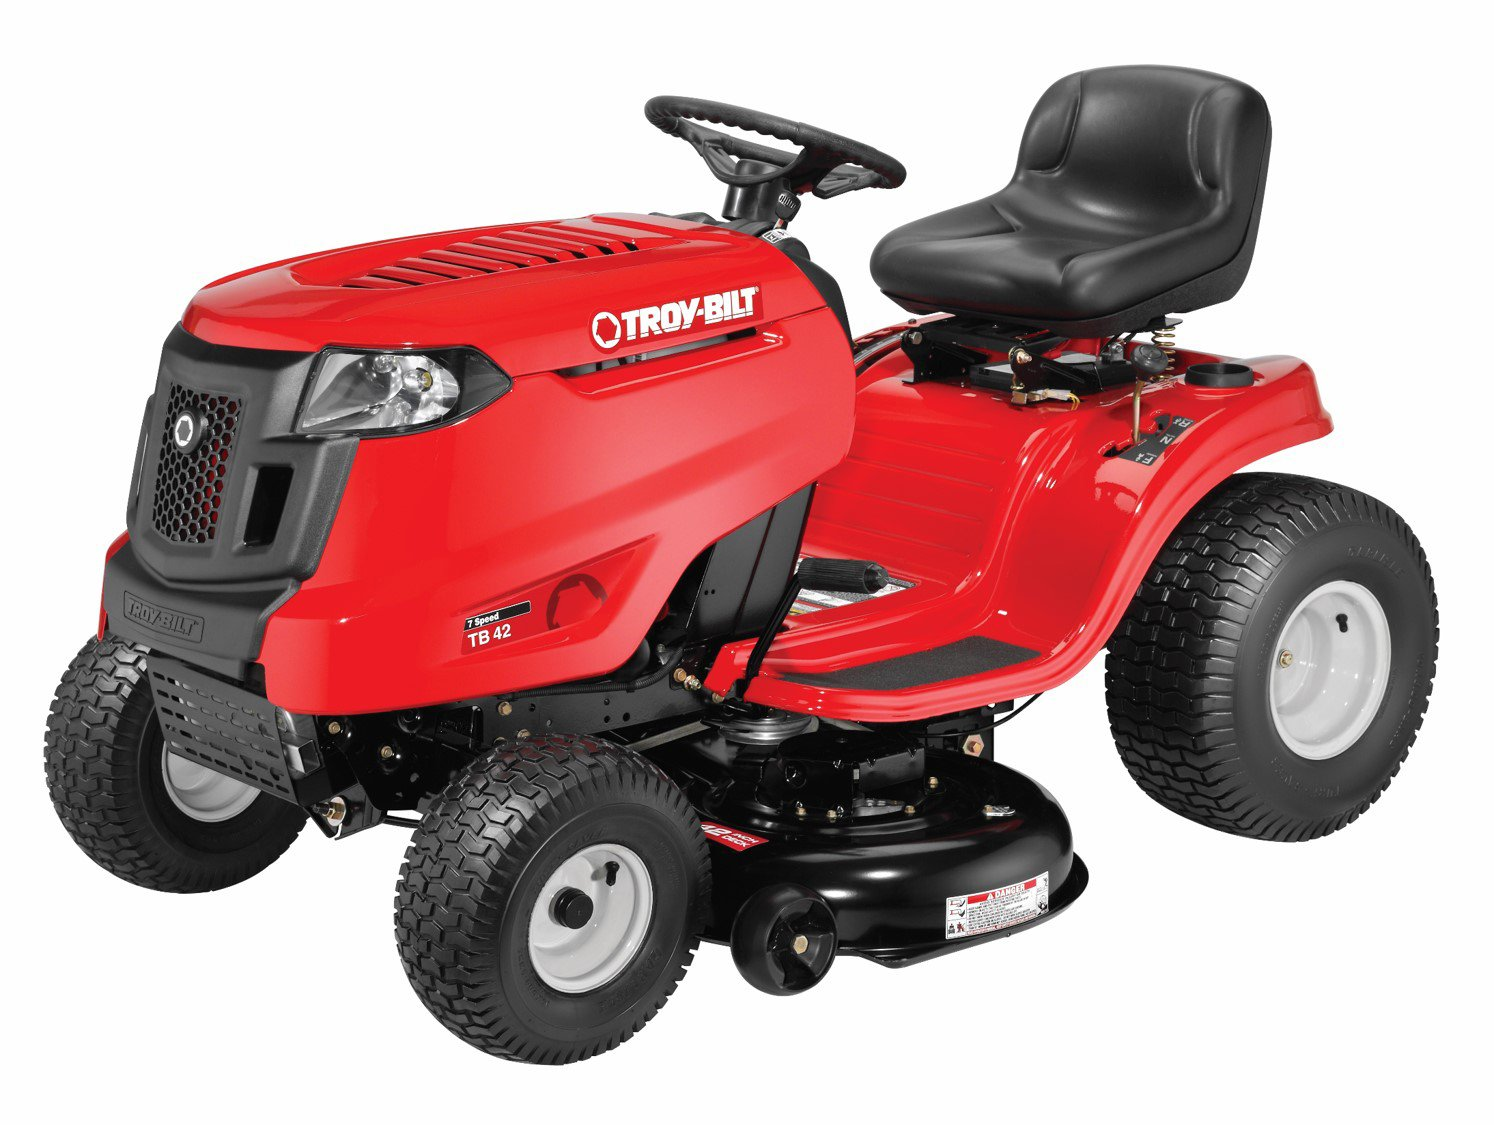 Troy-Bilt: Auto Drive 7-Speed Side Discharge Riding Lawn Tractor